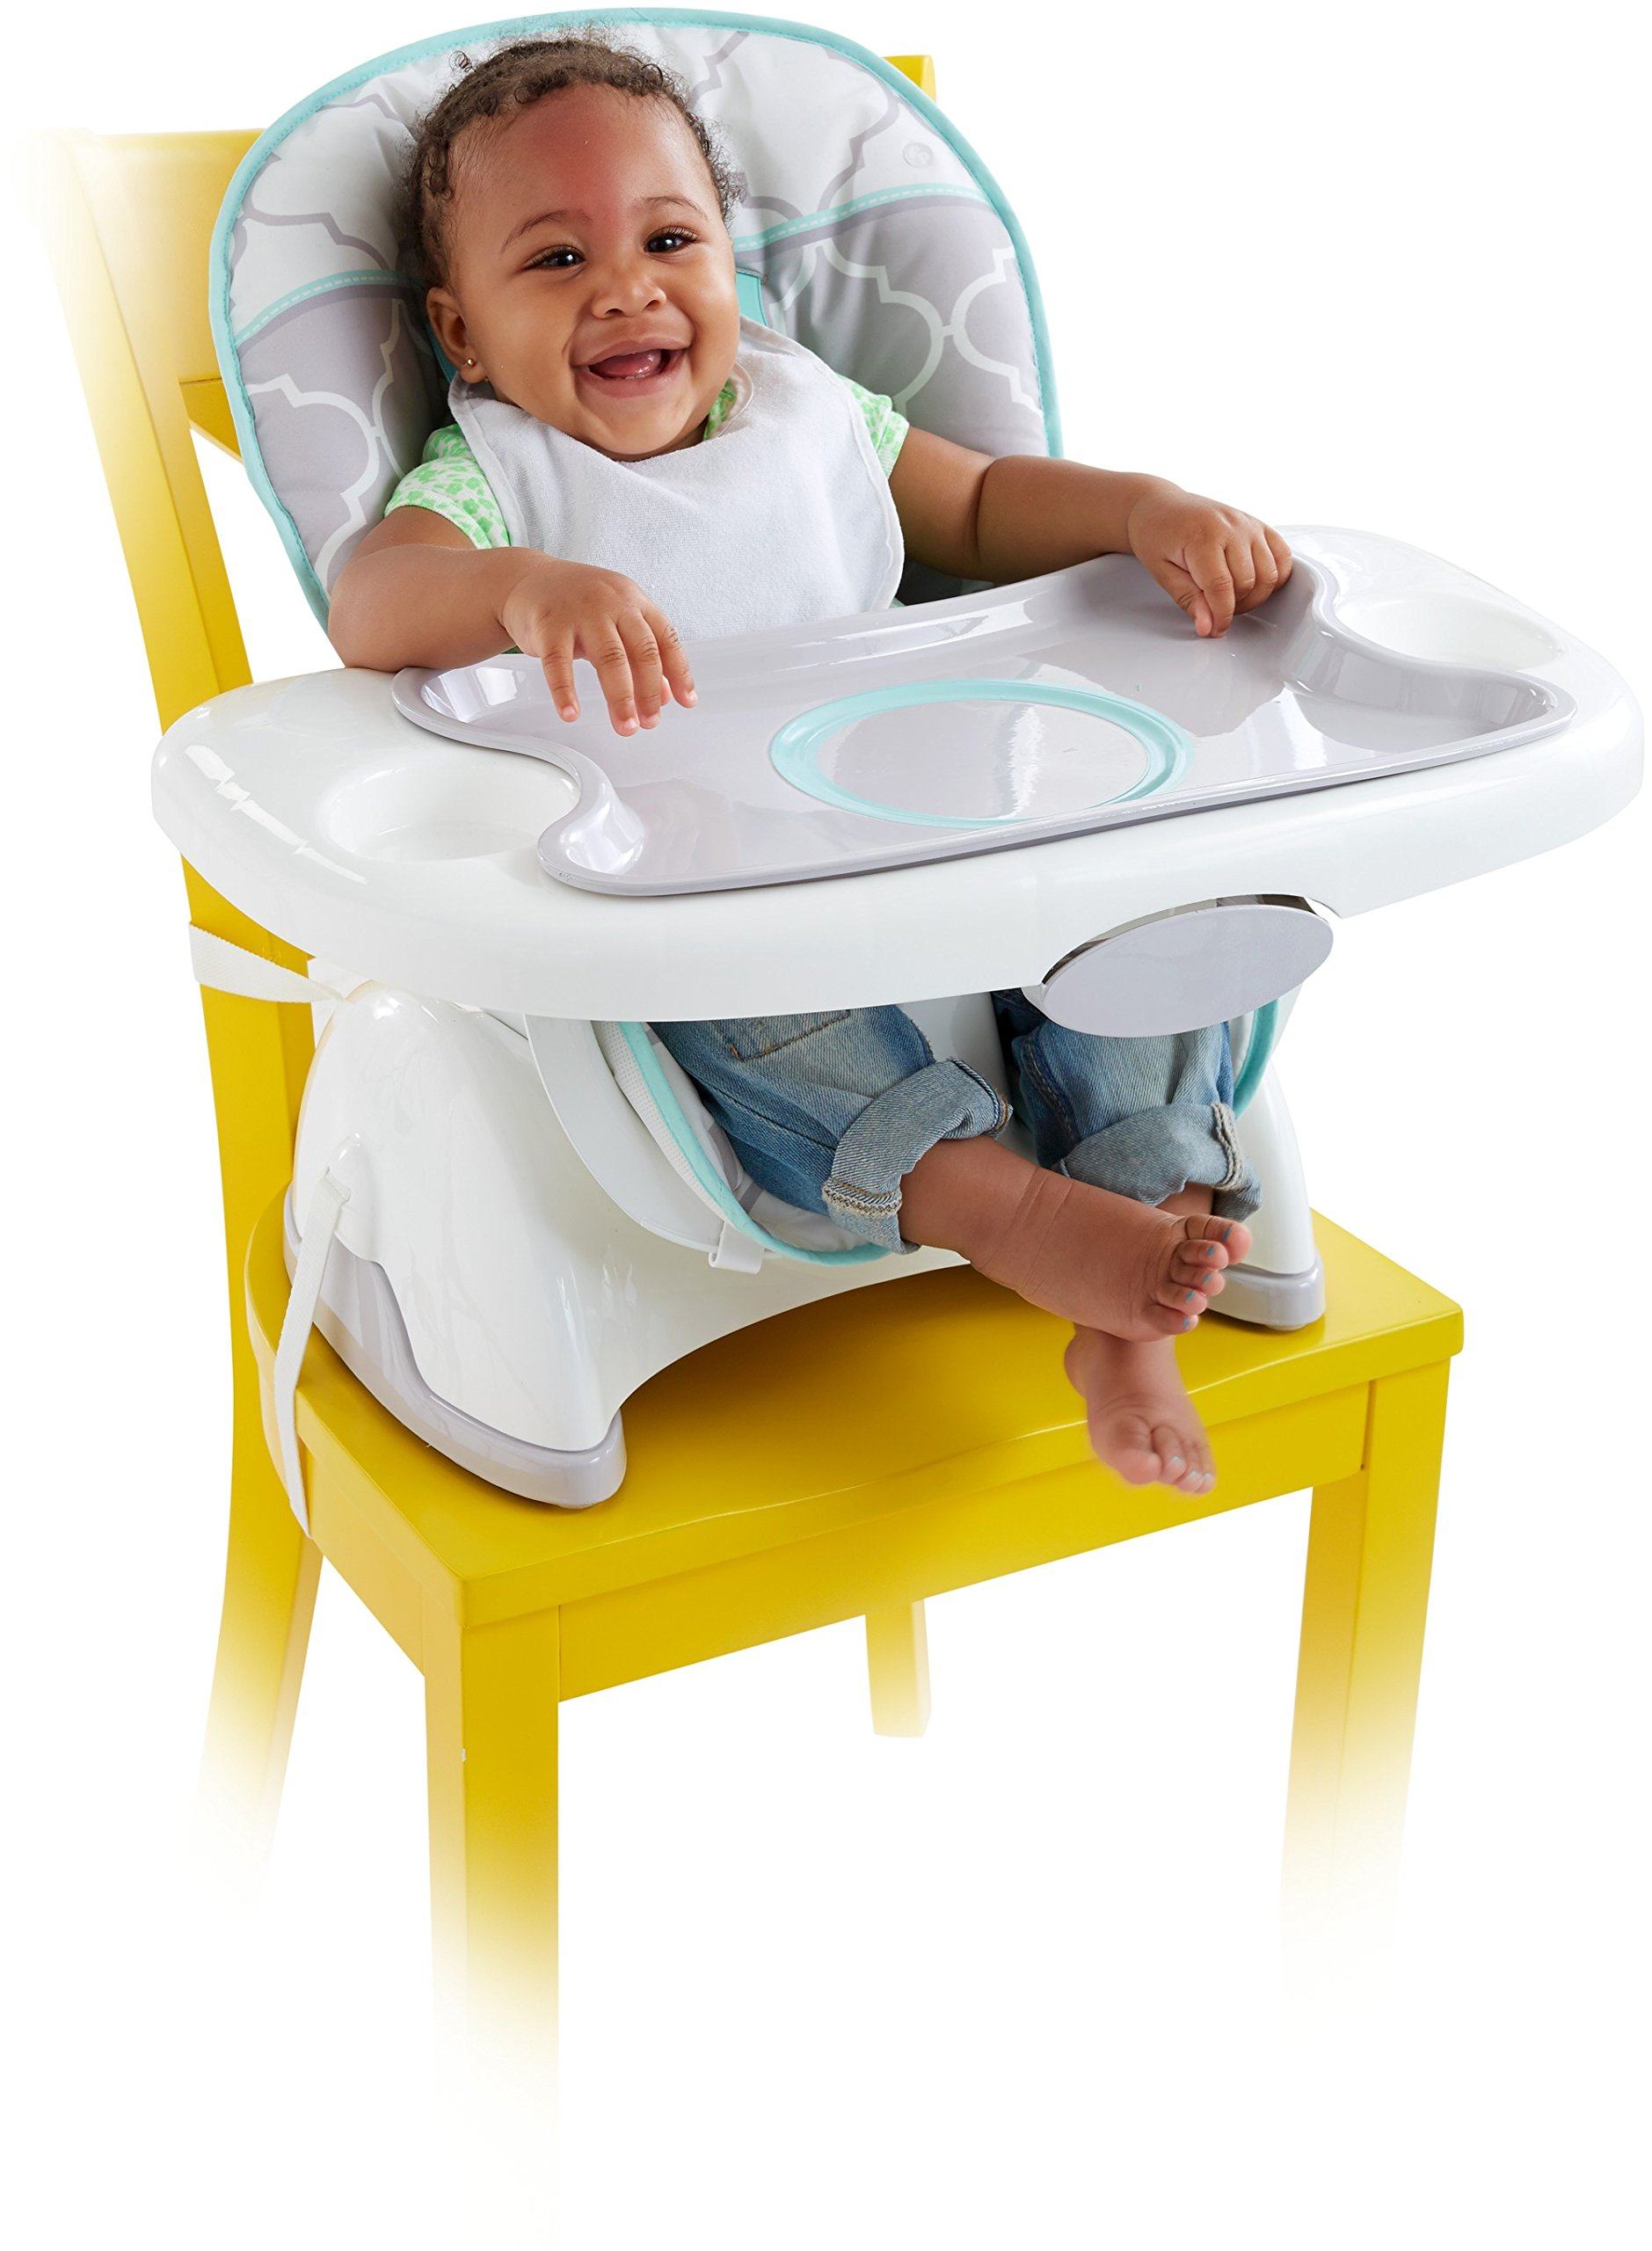 Fisher-Price Deluxe SpaceSaver High Chair,  Safari Dreams Grey/Mint